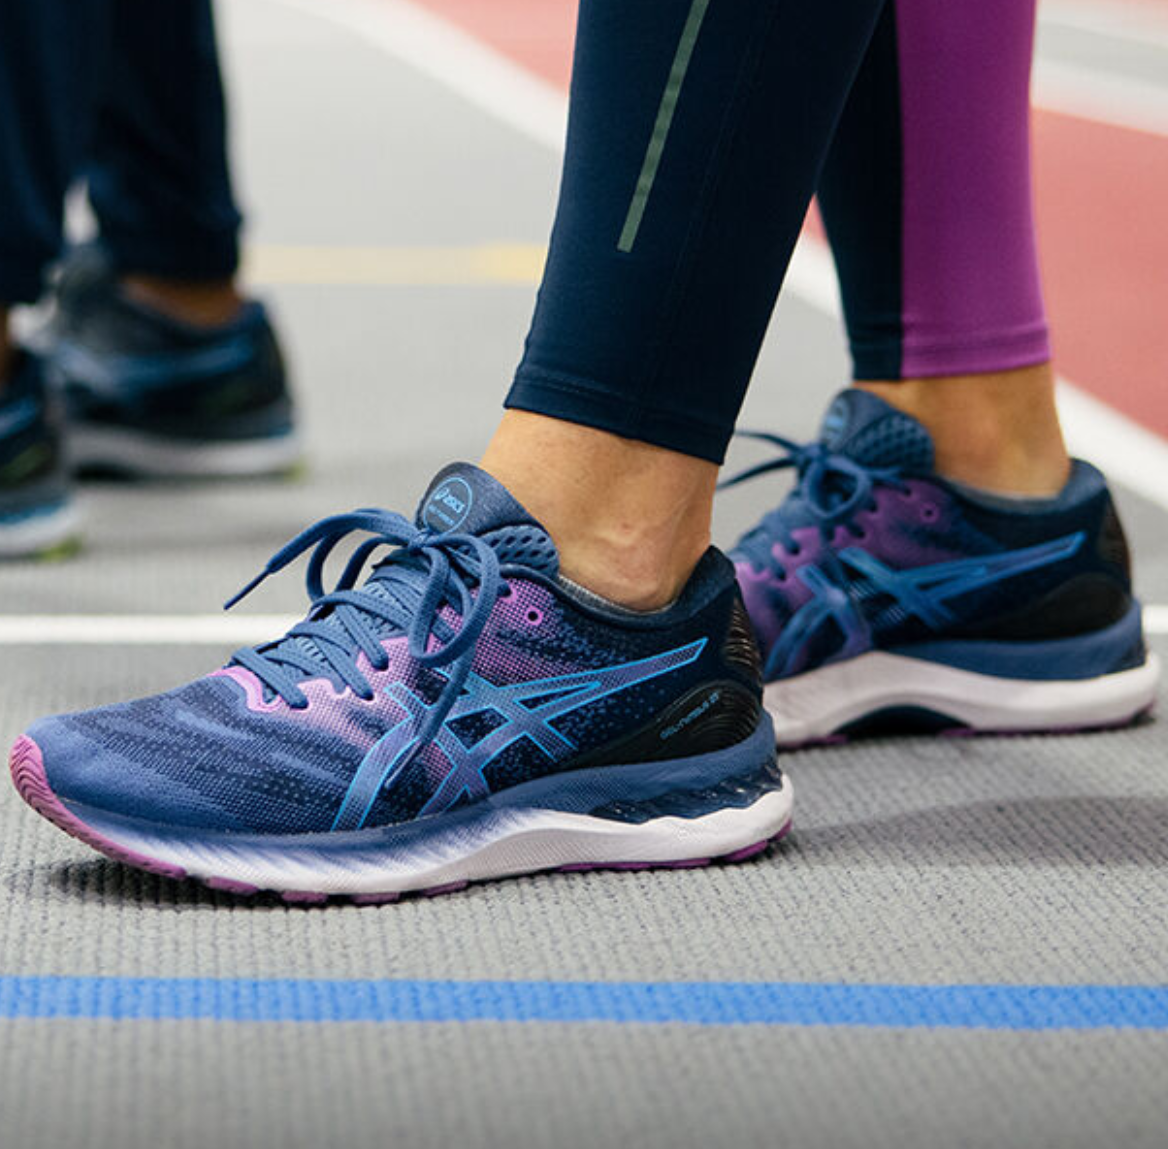 ASICS: Up to 60% Off Sale Styles